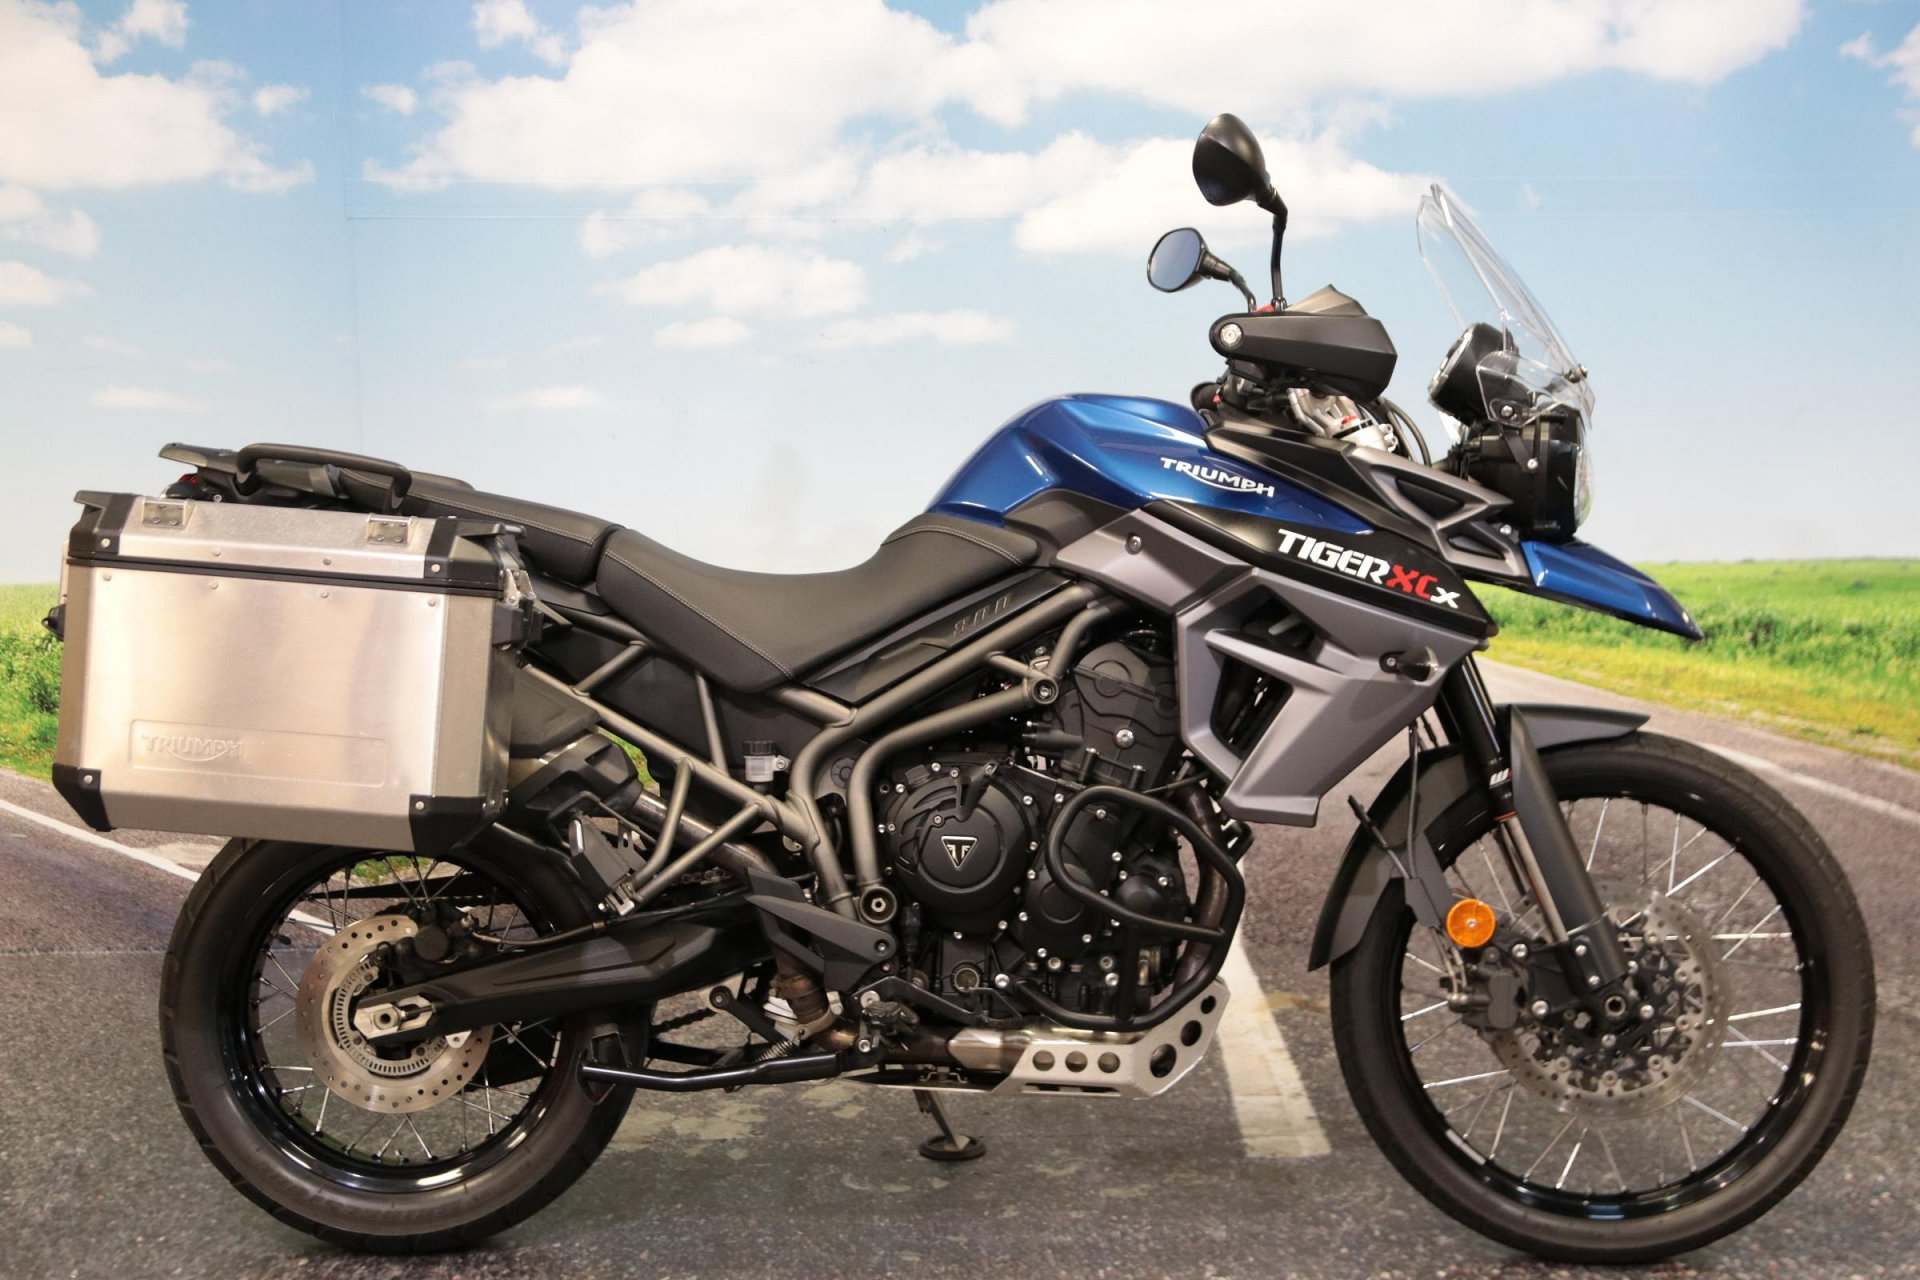 2017 Triumph Tiger 800 XCX for sale in South Wales